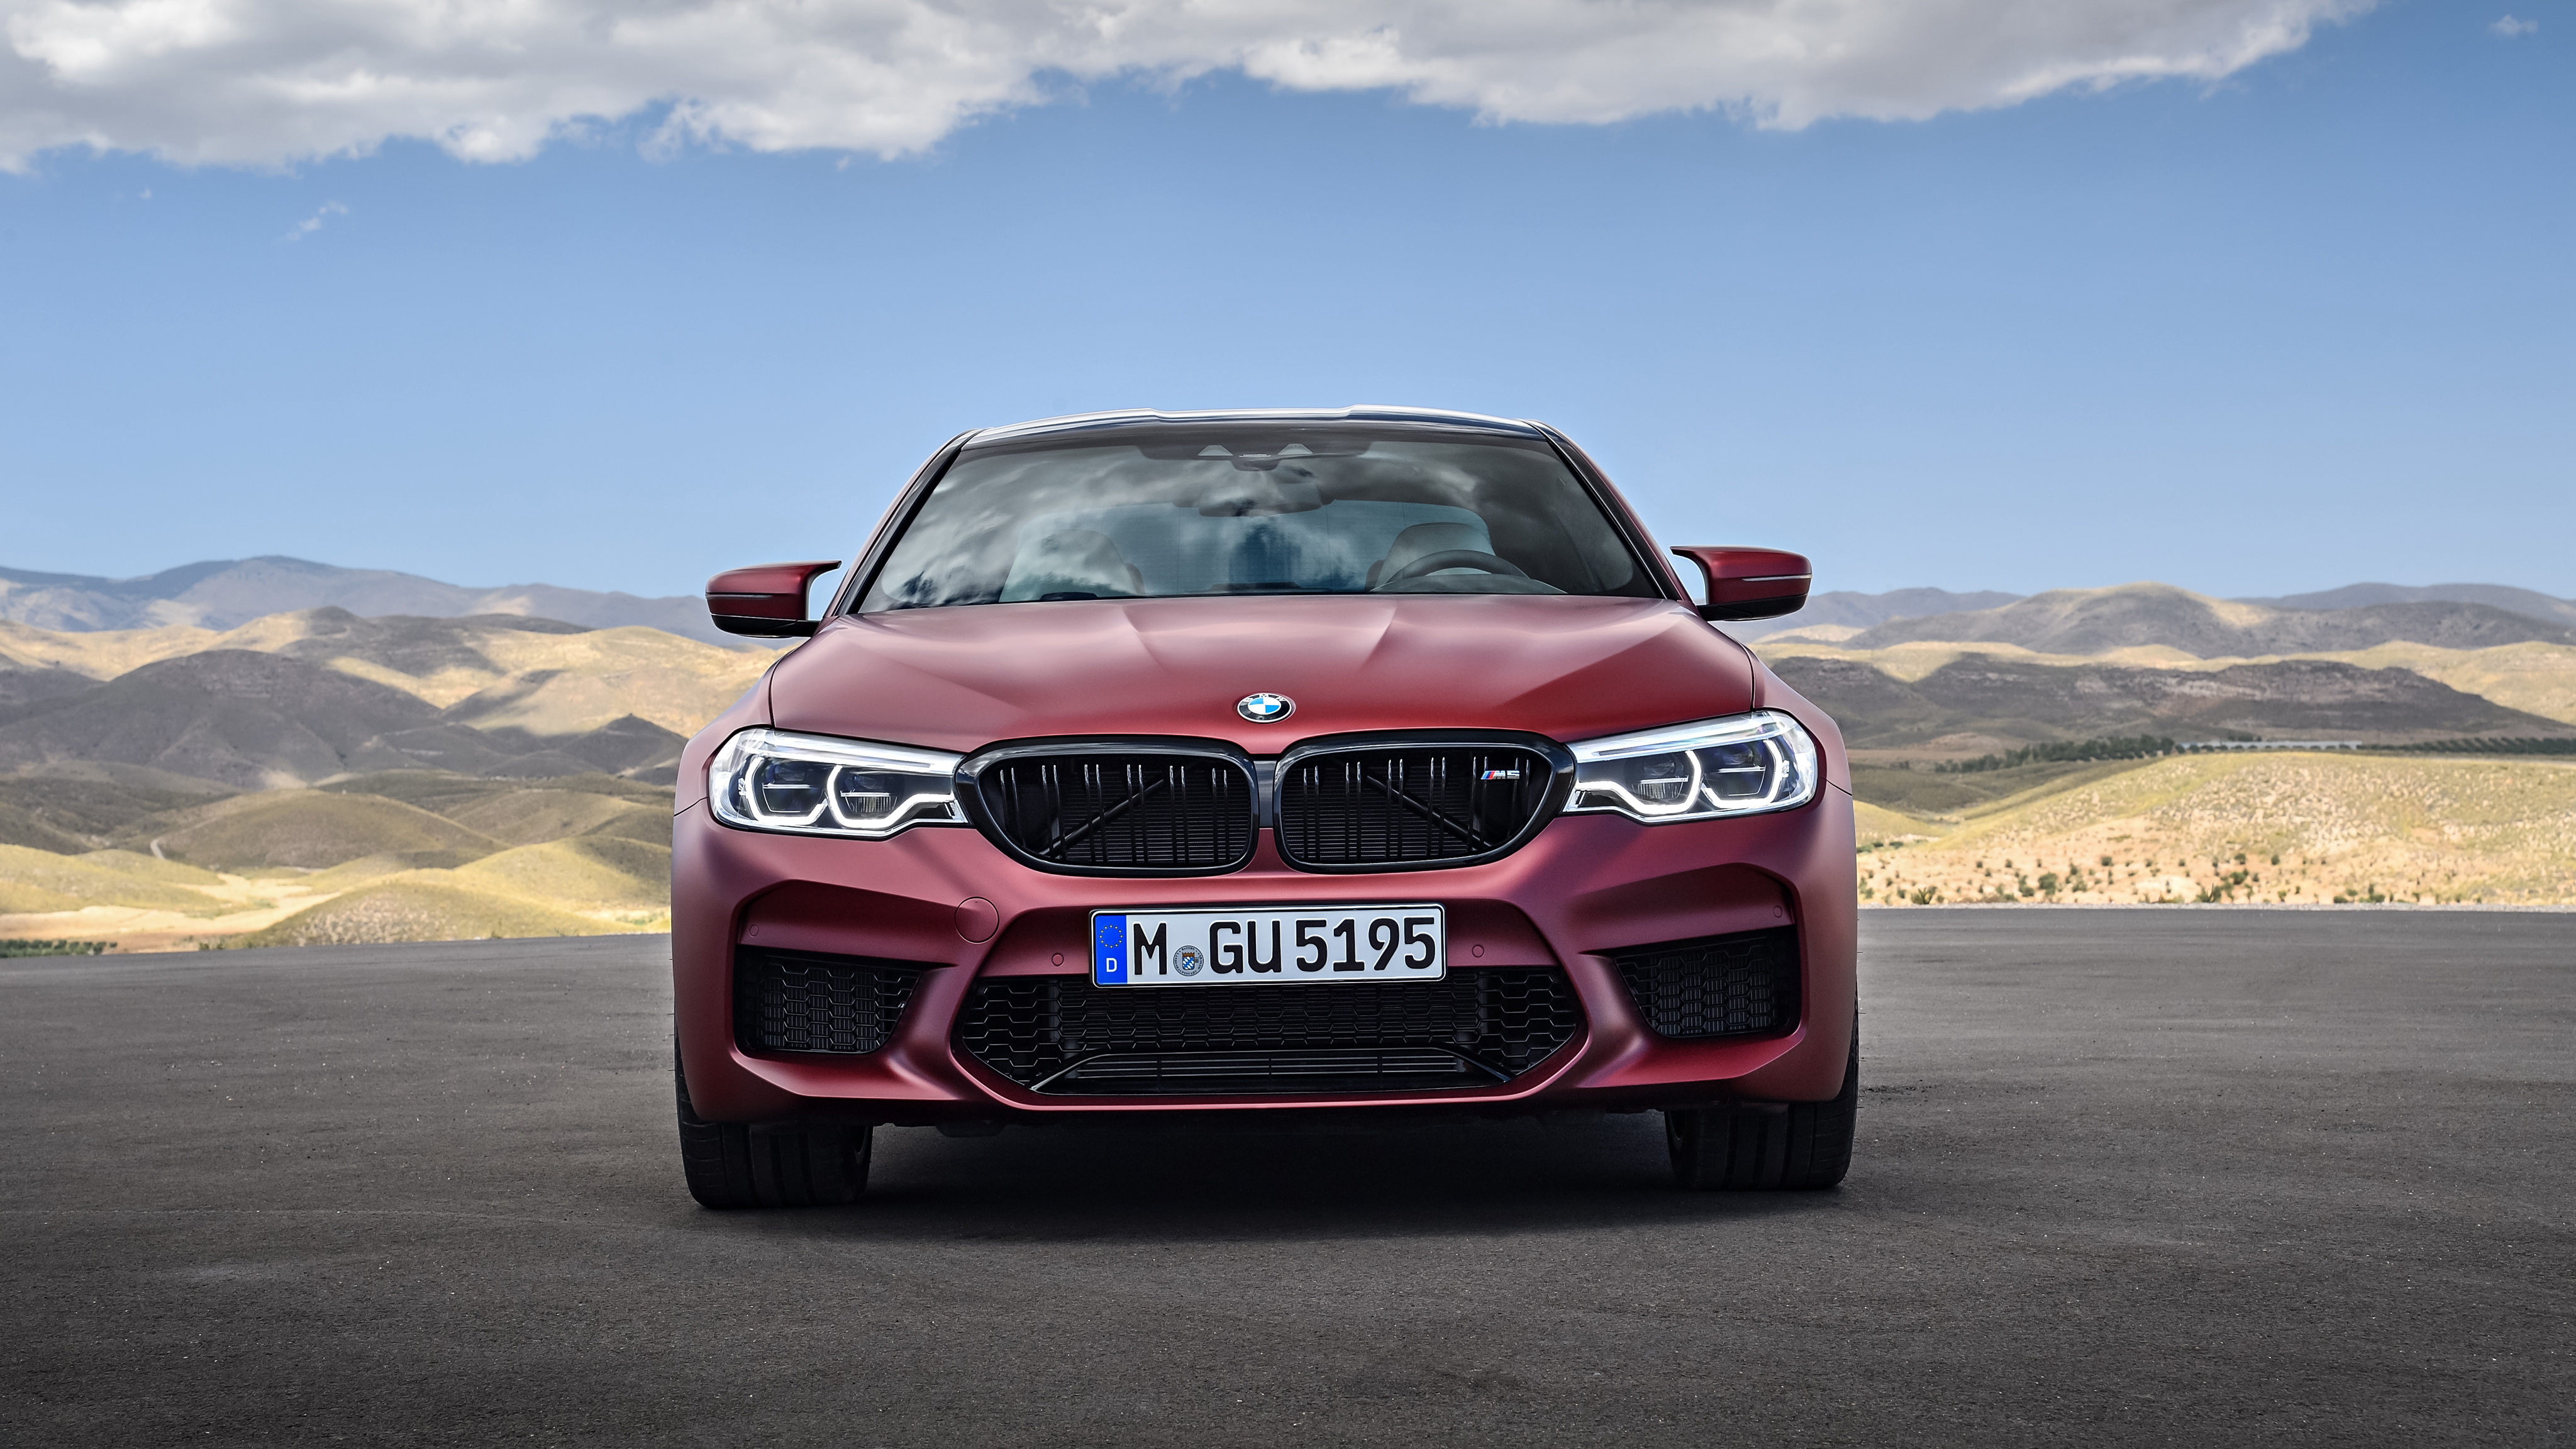 2018 BMW M5 First Edition 4K Wallpaper | HD Car Wallpapers ...